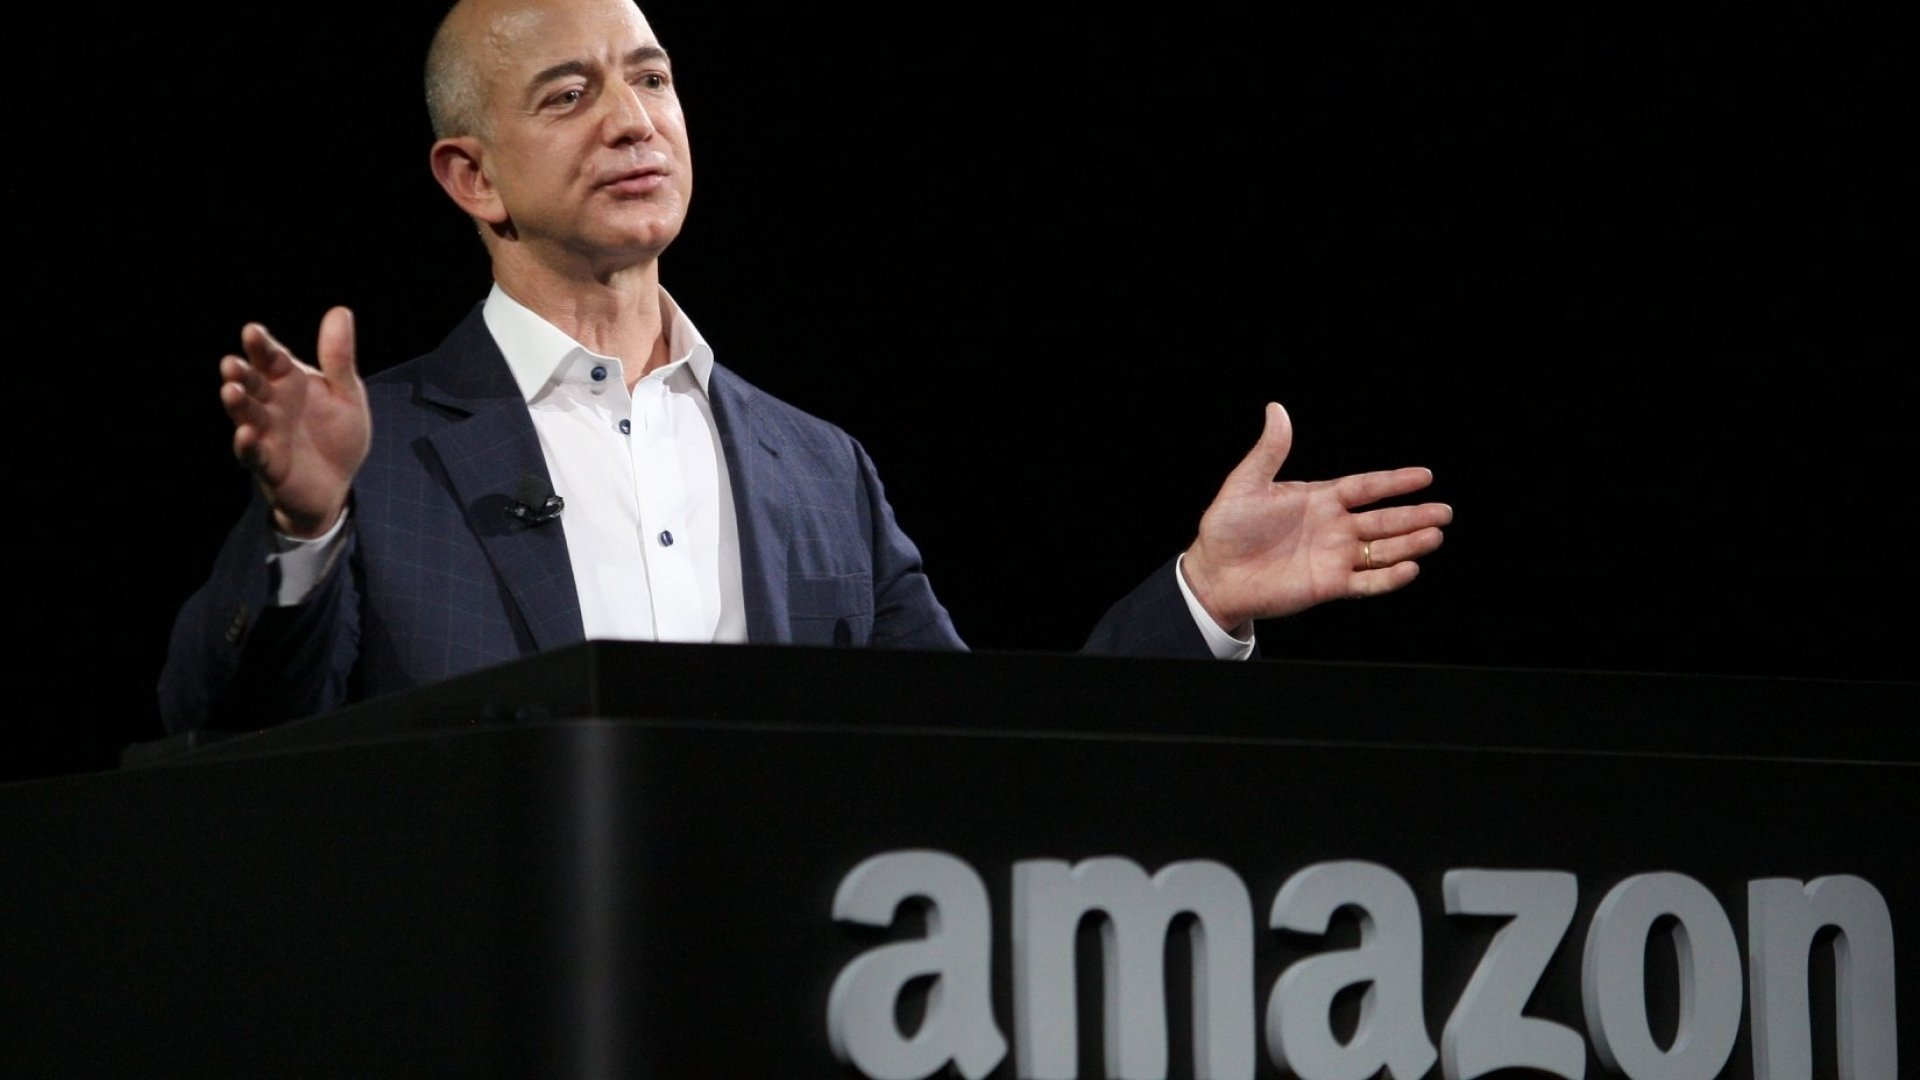 Jeff Bezos' vision for the future of Amazon goes well beyond the short term speculation about the pending Whole Foods acquisition.